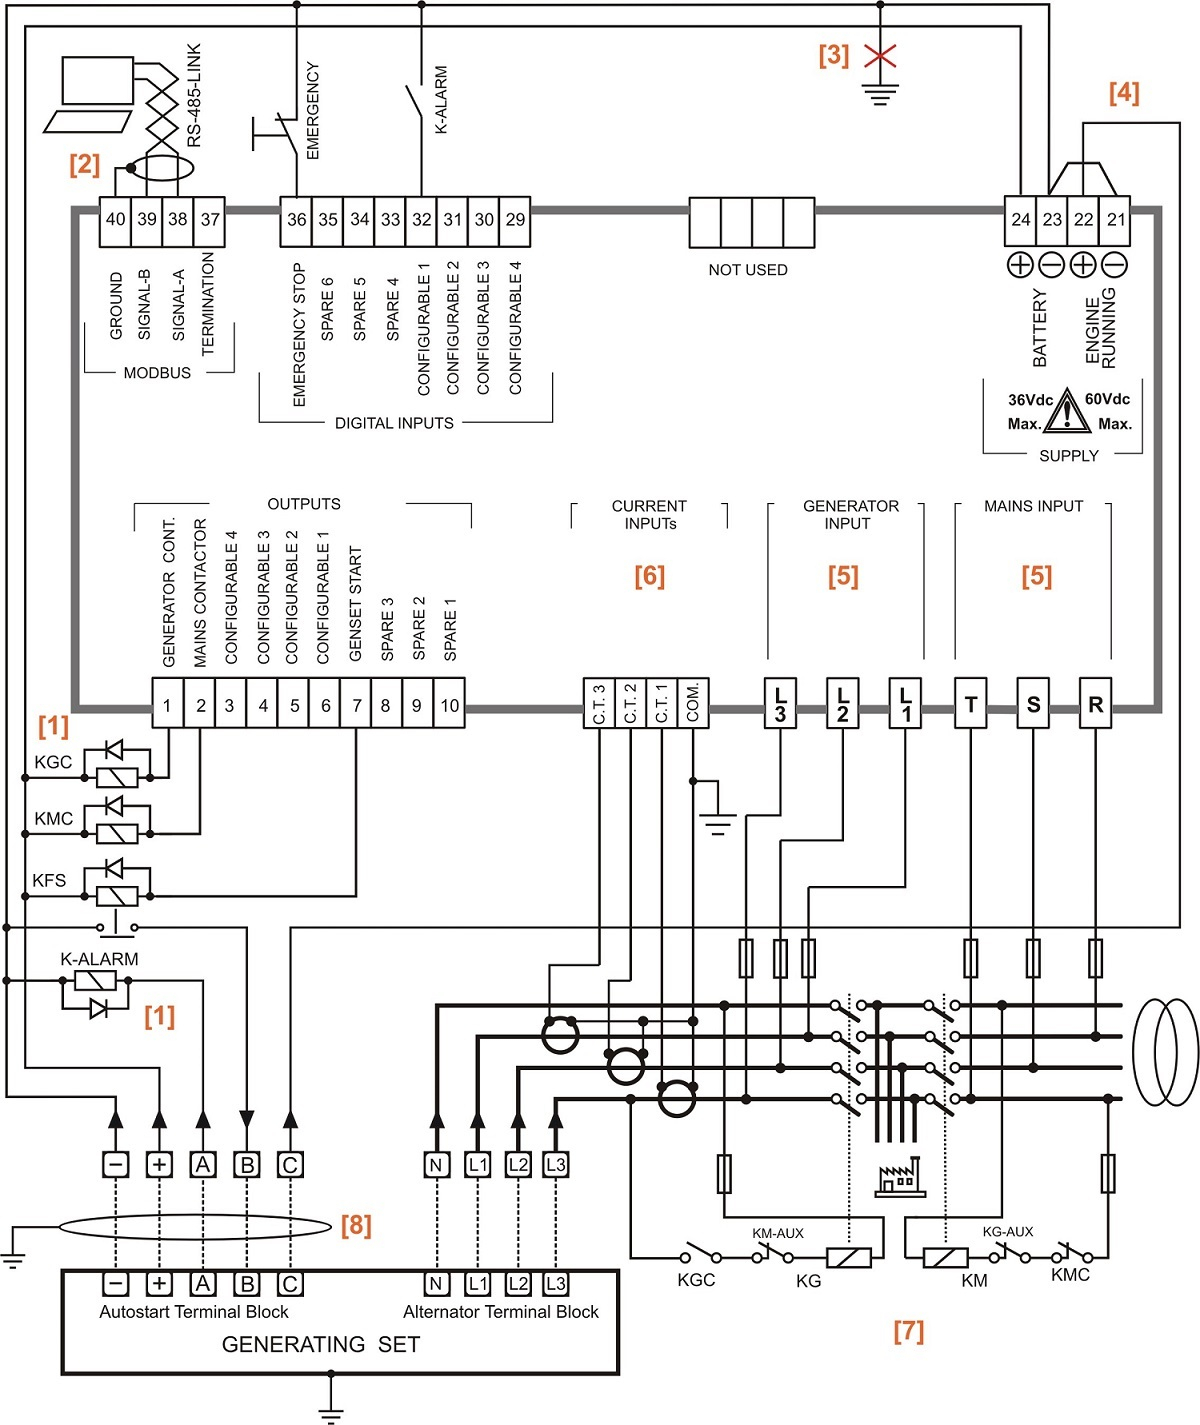 Collection Of Cutler Hammer Automatic Transfer Switch Wiring Diagram Photo Schematics